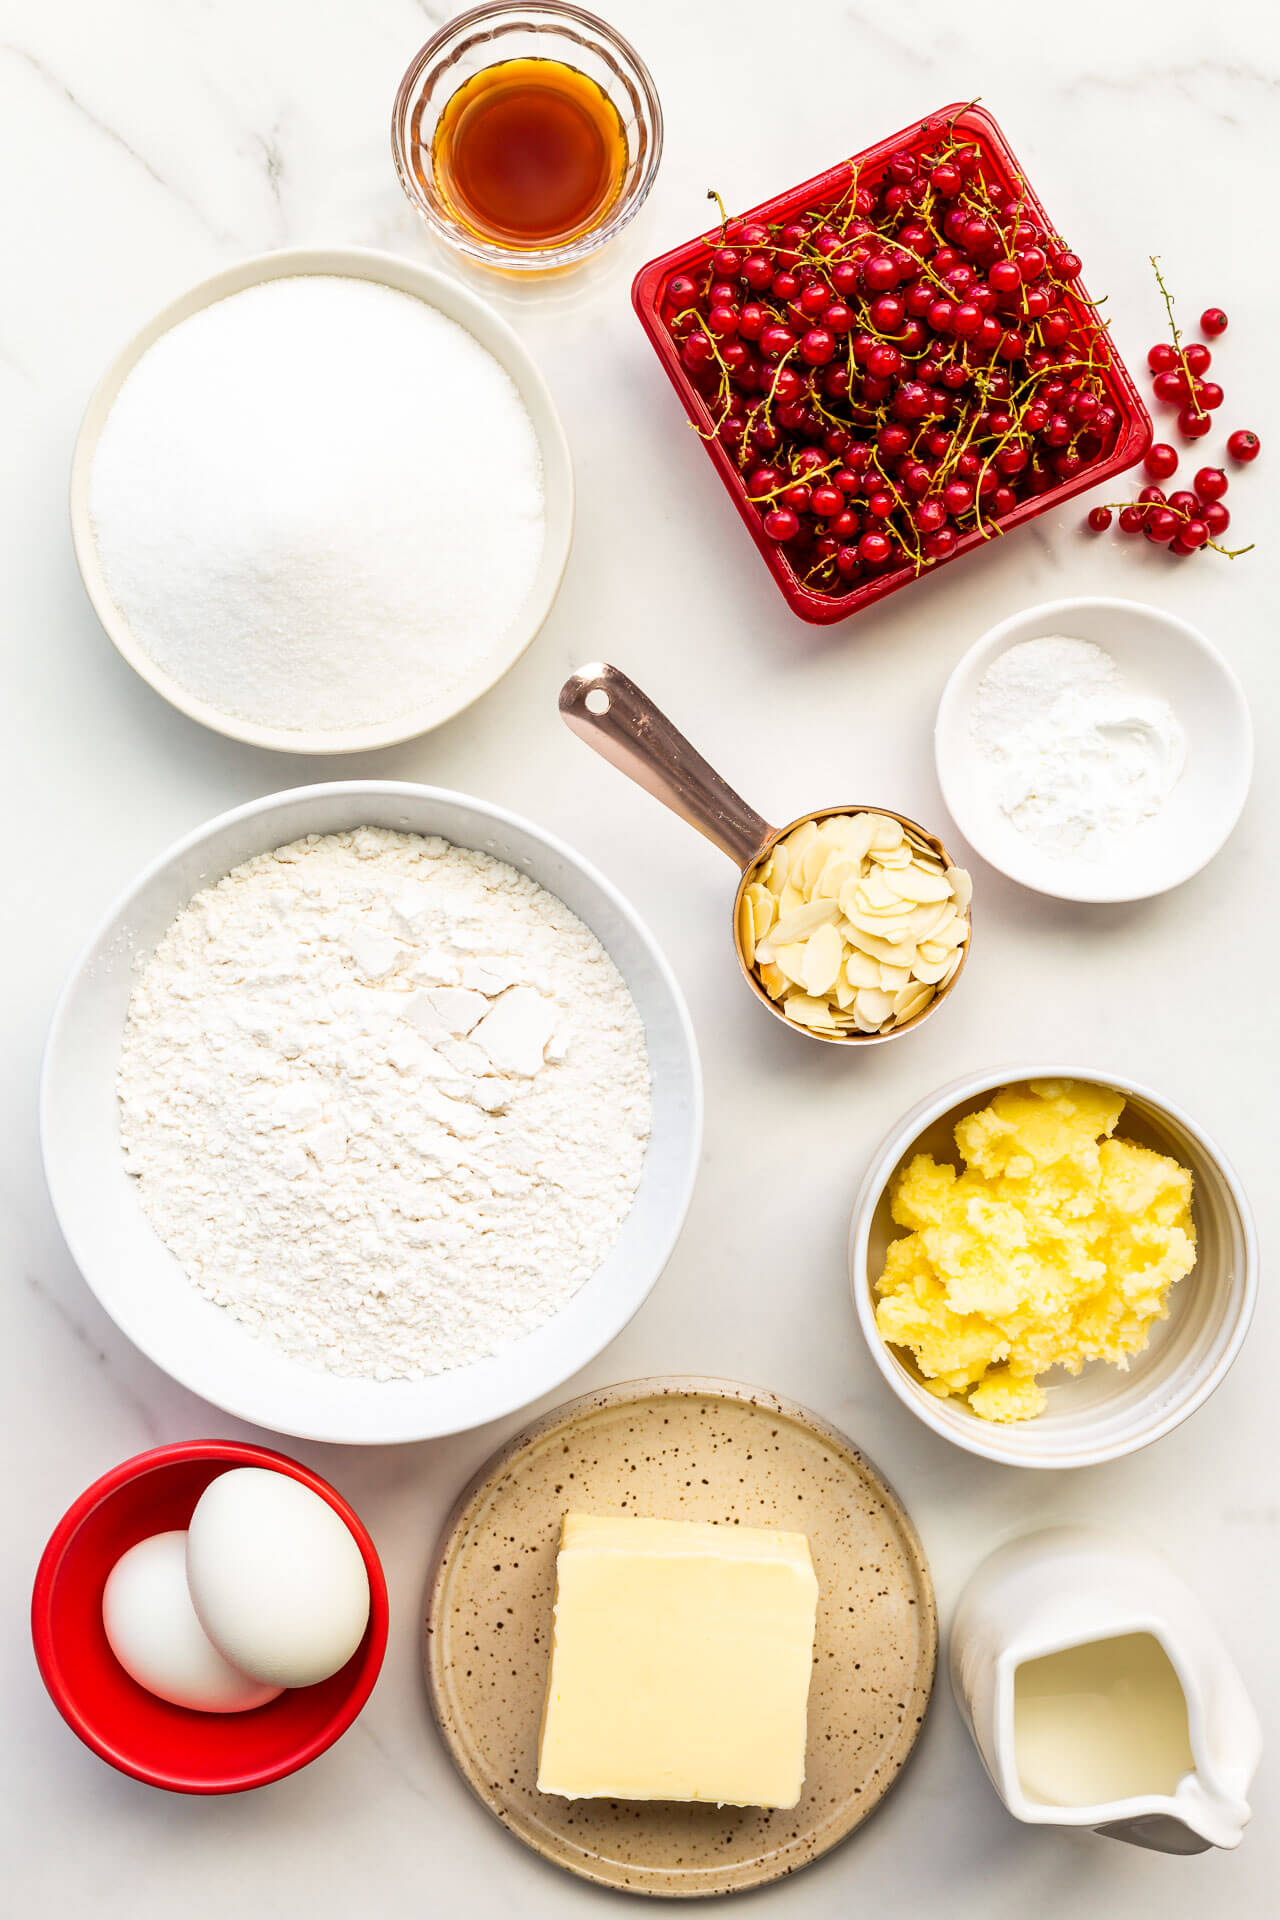 Ingredients measured out in small bowls and plates to make red currant muffins from scratch with a sugary crisp topping and sliced almonds